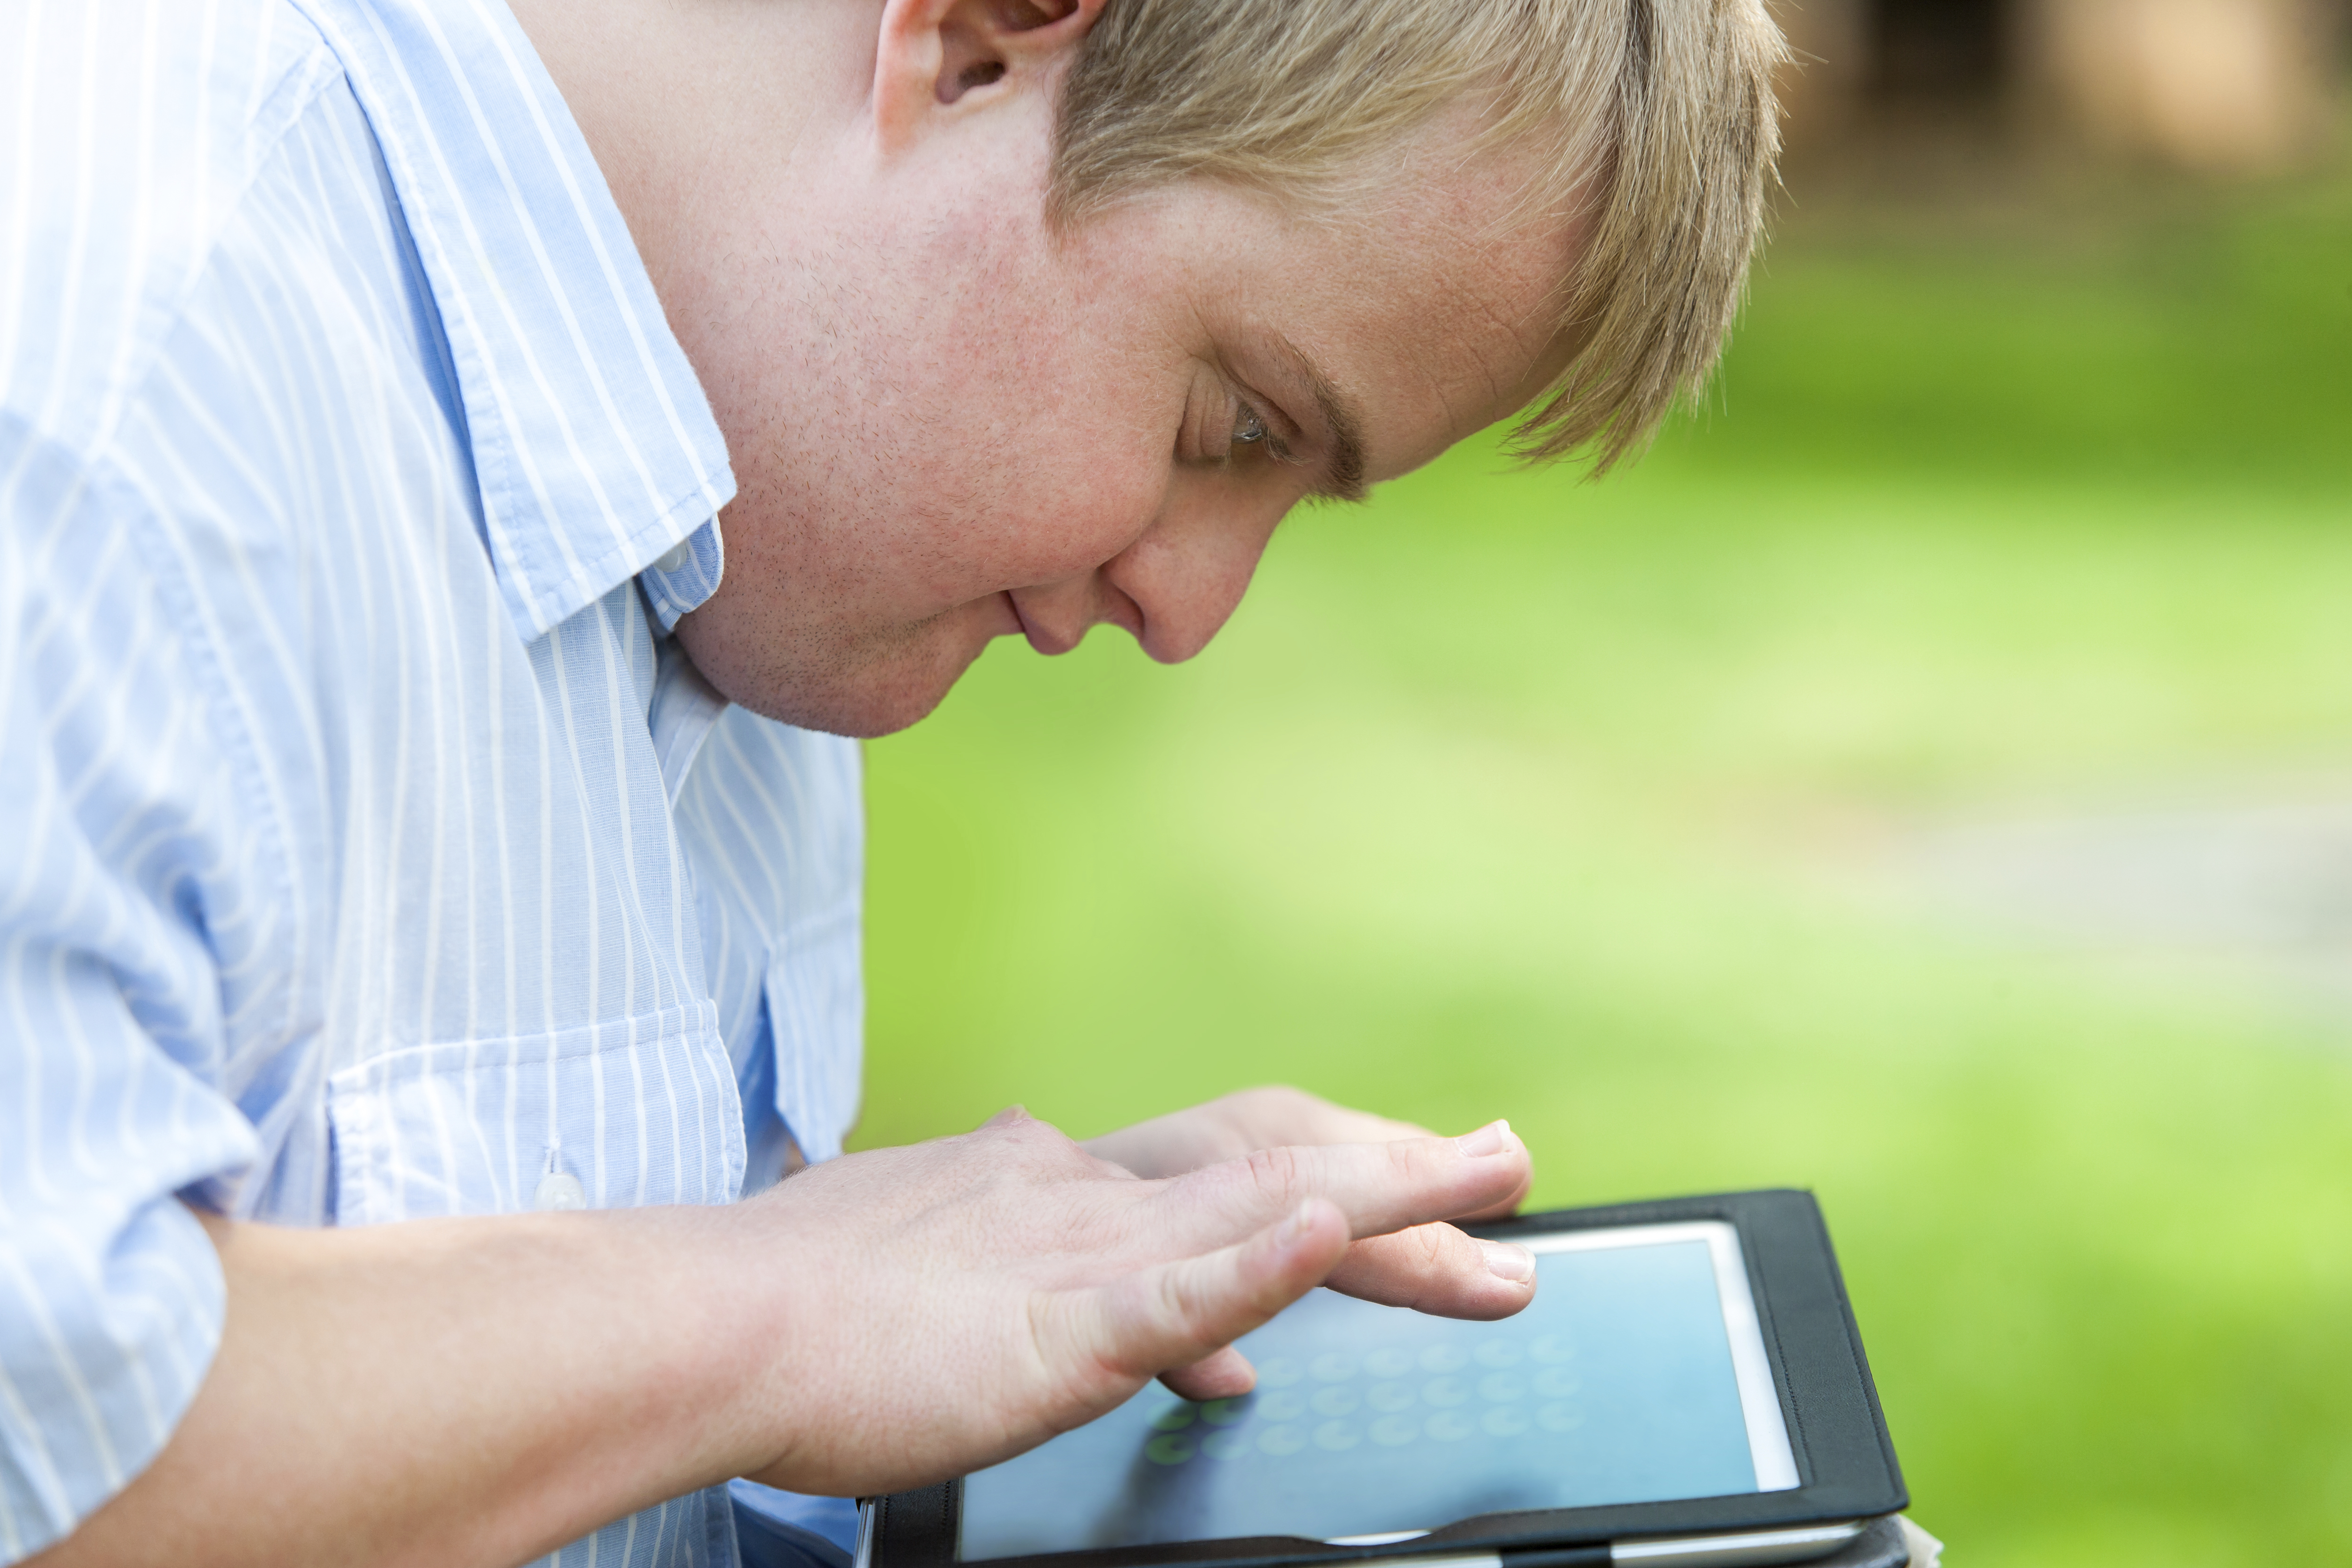 Young man taps a tablet screen